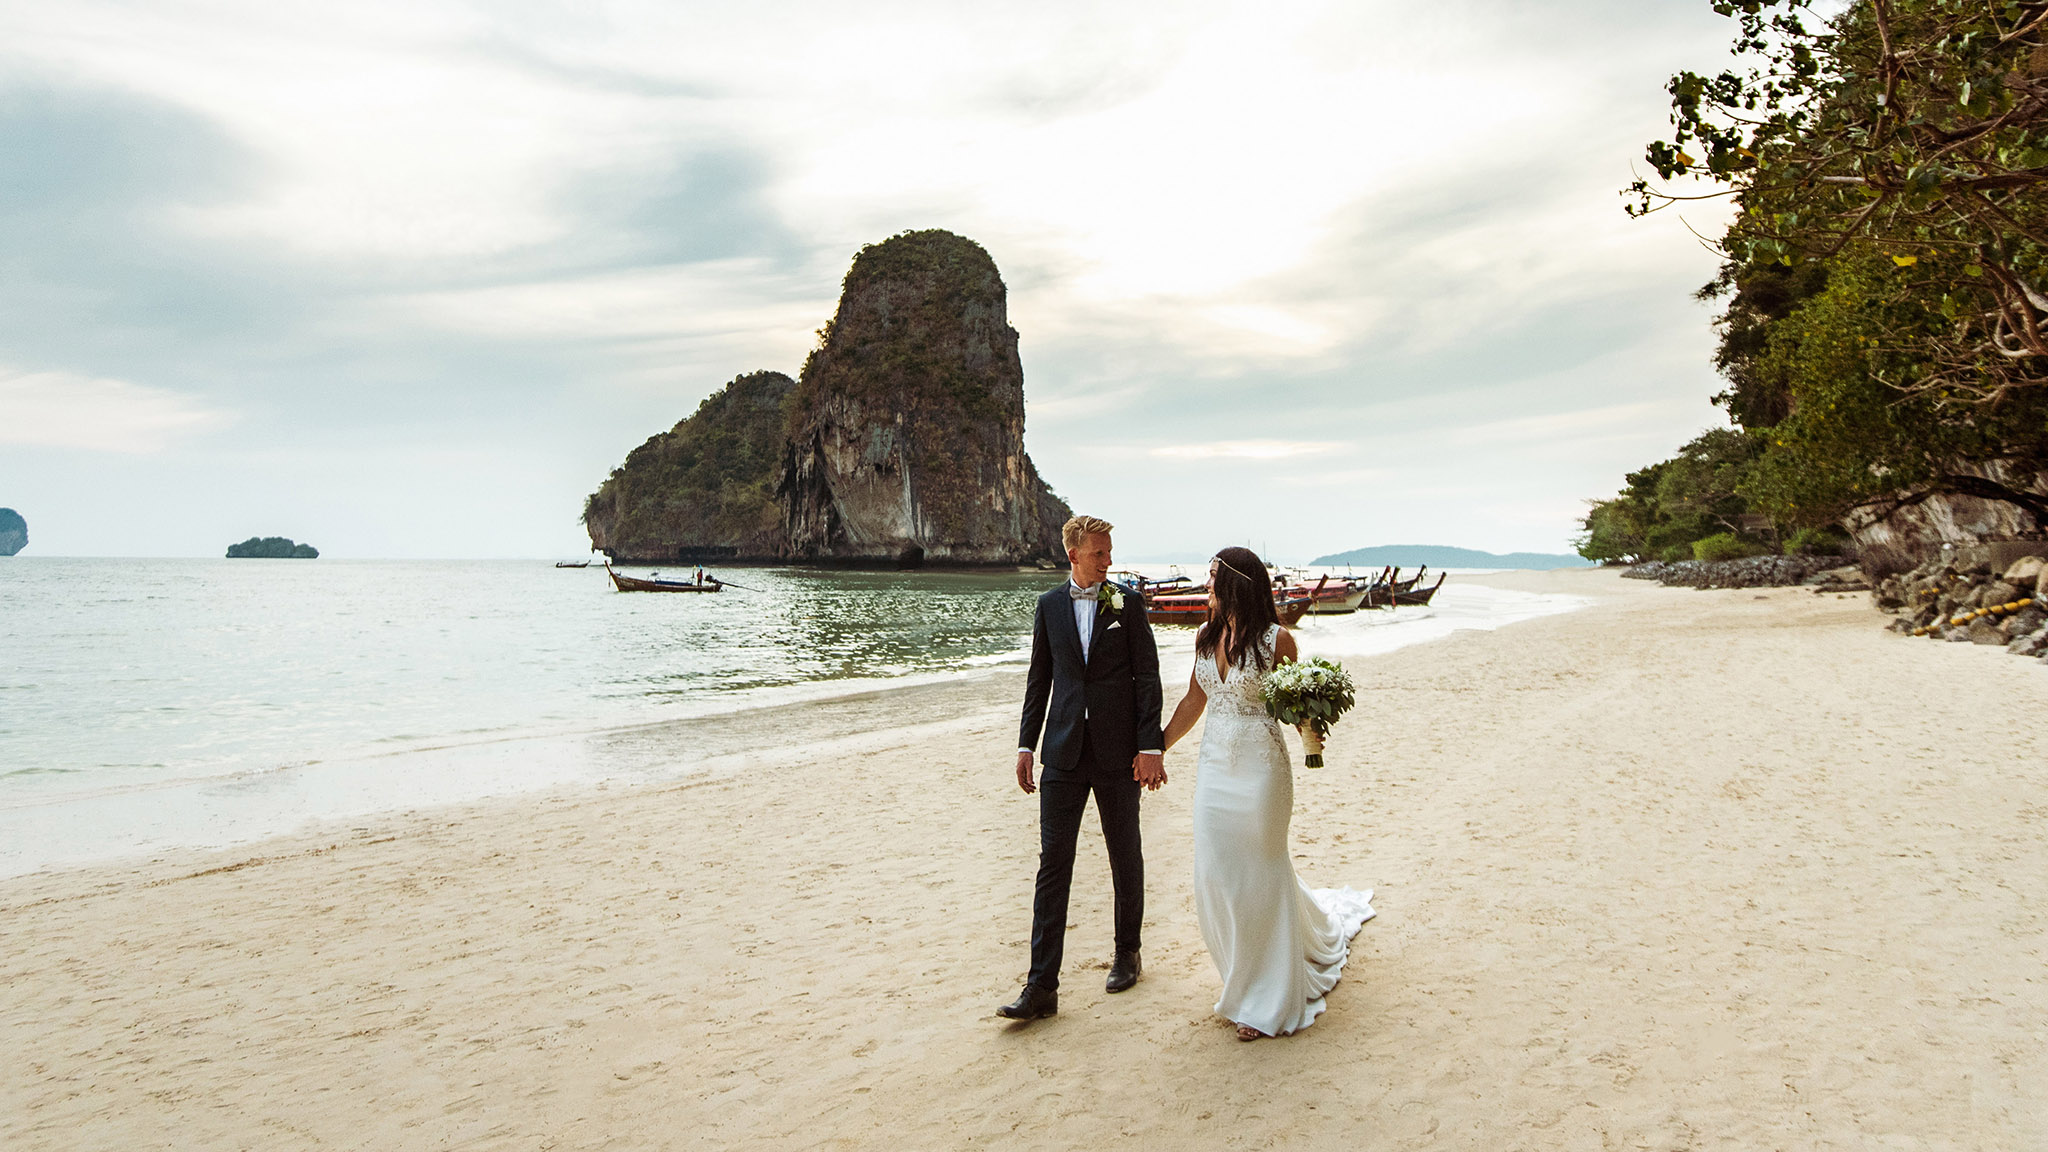 Wedding photography at Railay, Rayavadee